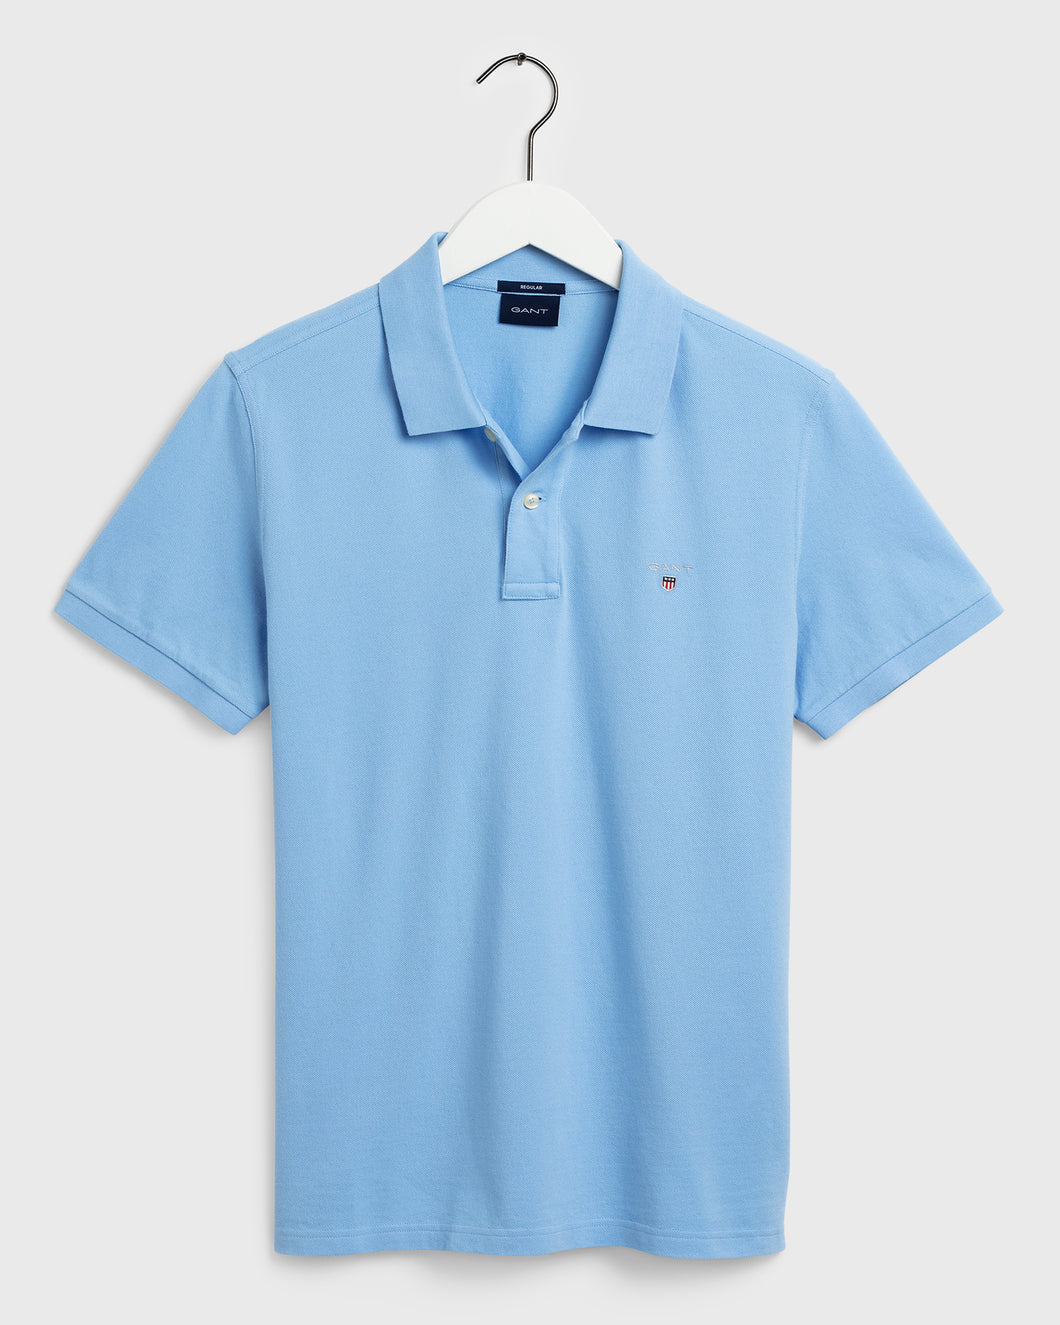 Gant Original Pique Short Sleeve Rugger Capri Blue